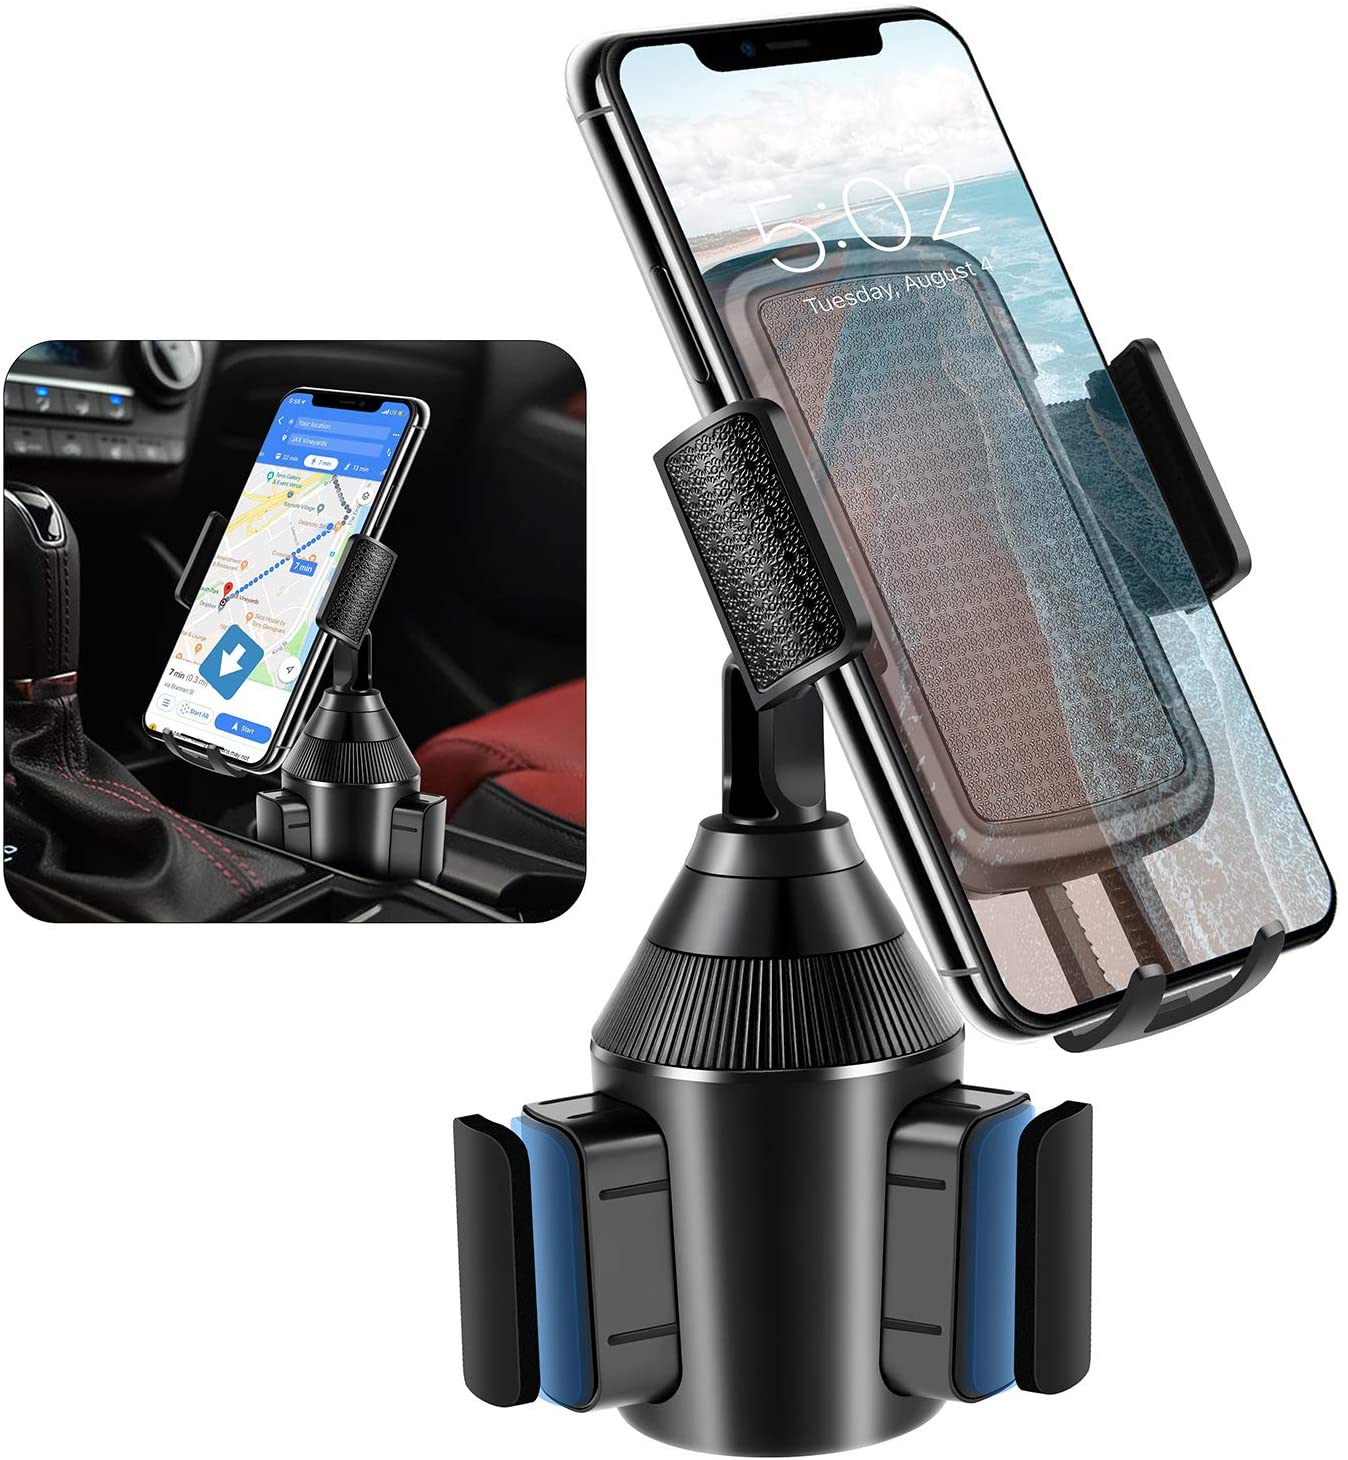 Cup Holder Phone Mount,Adjustable Universal Smart Car Cell Phone Mount for iPhone 11 Pro/XR/XS Max /8/7/6 Plus,Samsung Galaxy S10/S9/S8 Note 9 Sony/HTC-[2020 Upgraded Cup Holder Cradle]